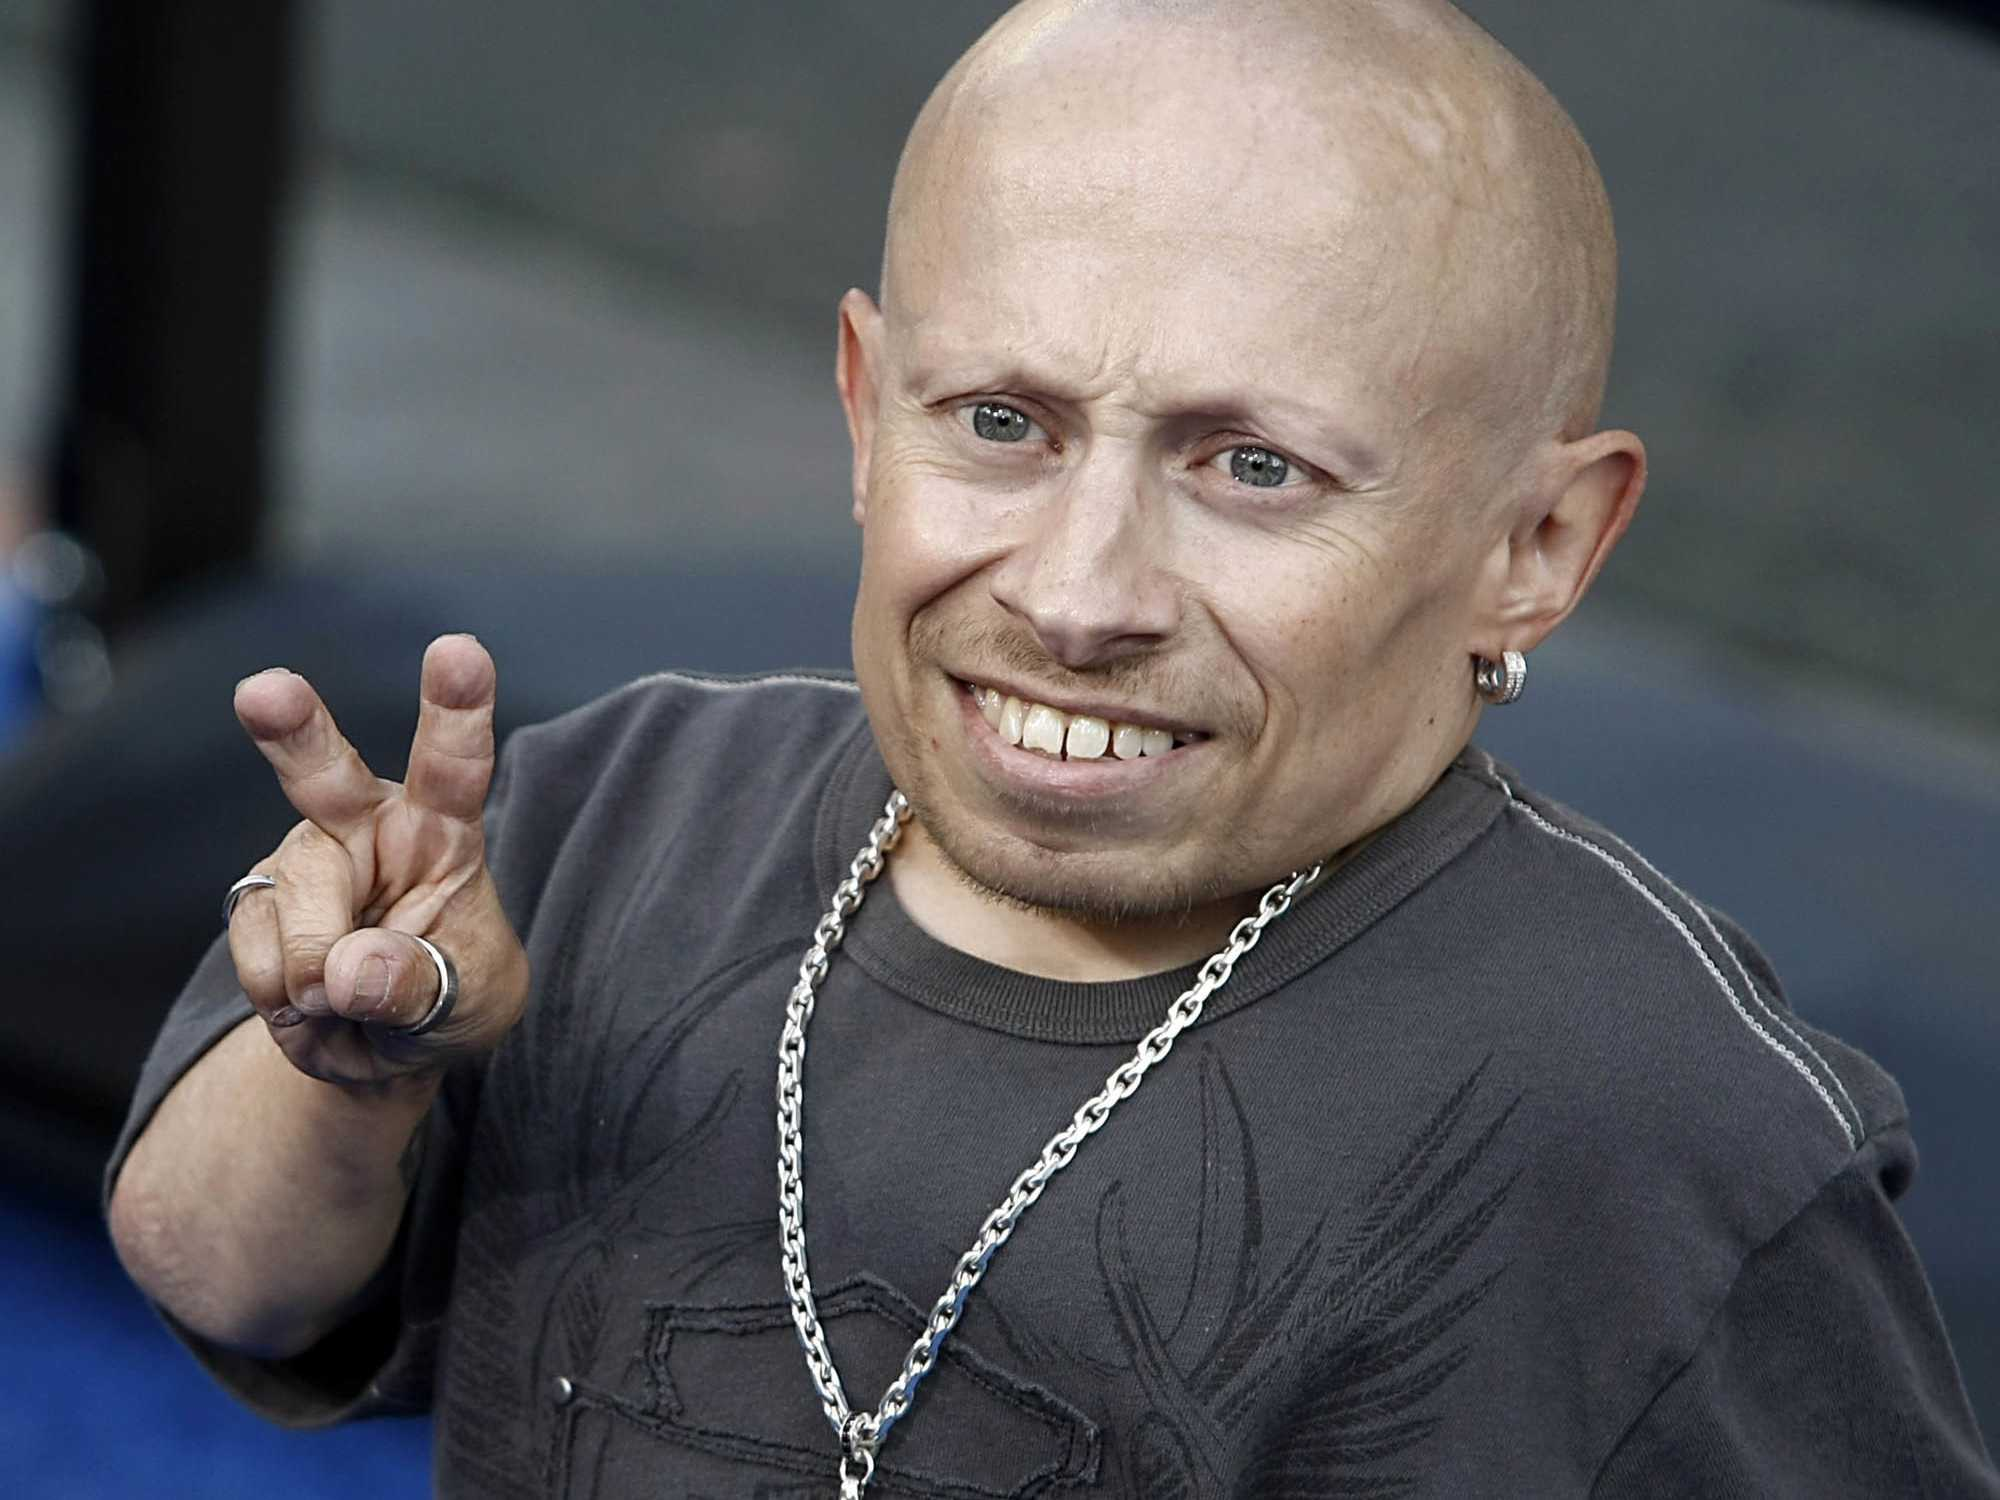 Verne Troyer, Mini-Me From 'Austin Powers' Films, has Died